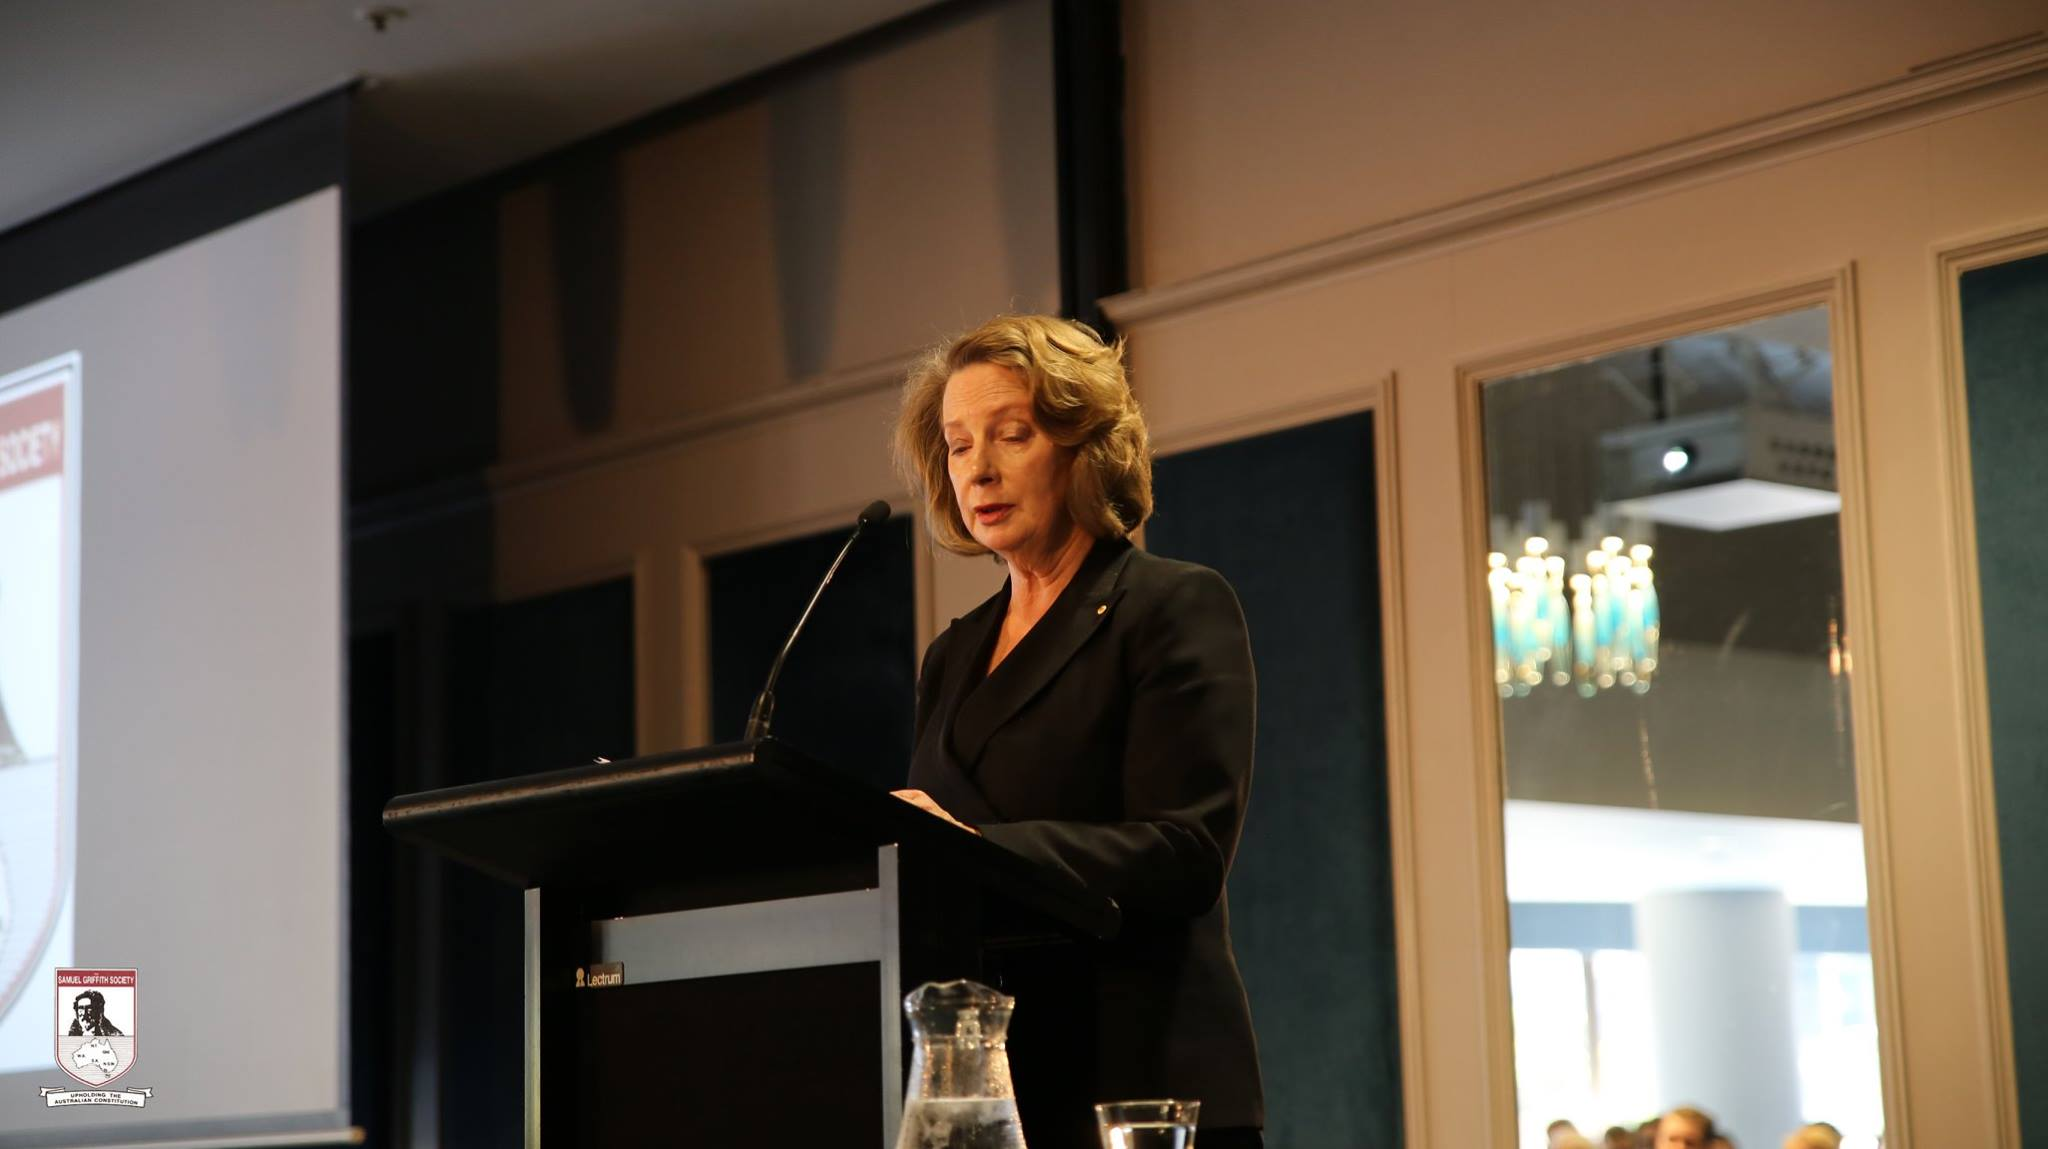 The Honourable Chief Justice Susan Kiefel AC delivers the Tenth Sir Harry Gibbs Memorial Oration in Brisbane